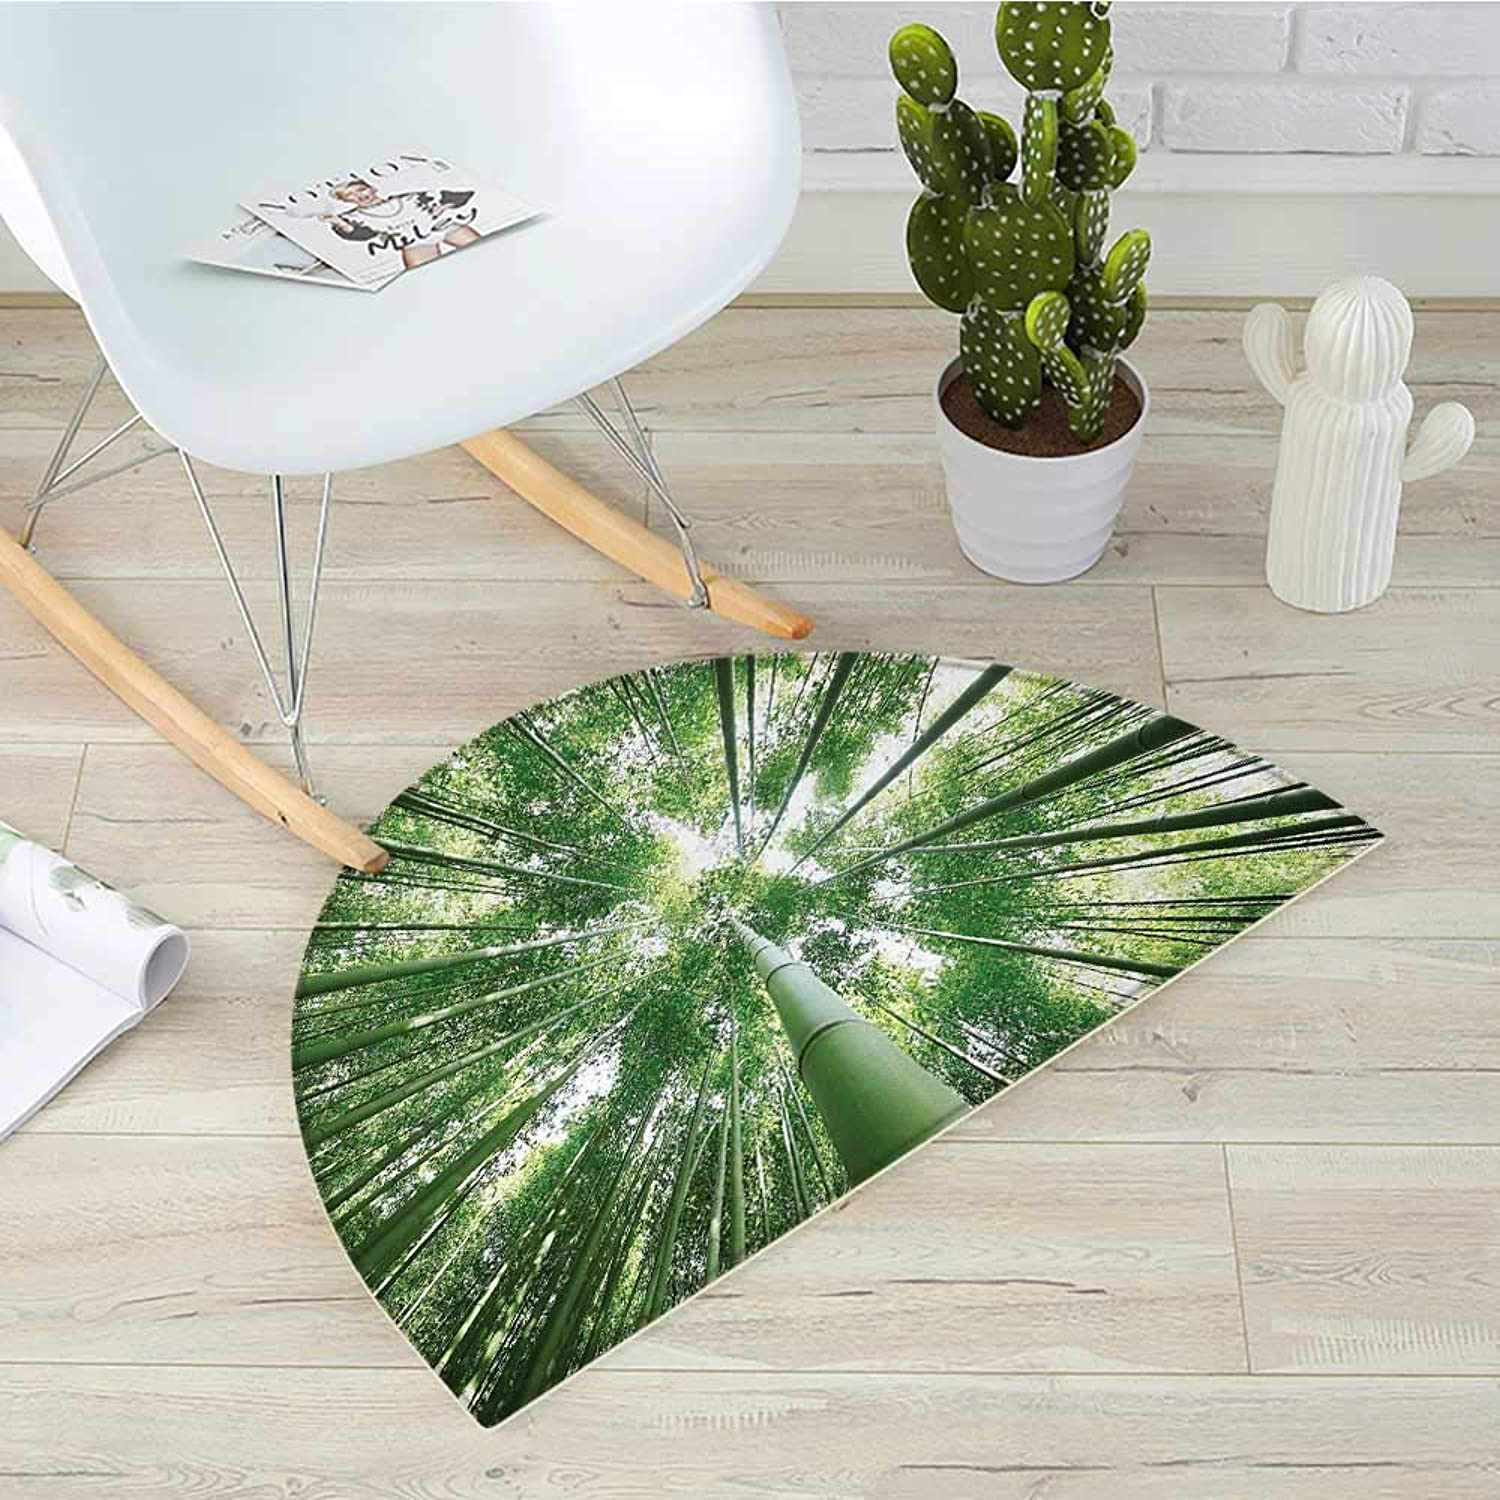 Bamboo Semicircle Doormat Tropical Rain Forest Tall Bamboo Trees in Grove Exotic Asian Style Nature Zen Theme Image Halfmoon doormats H 31.5  xD 47.2  Green